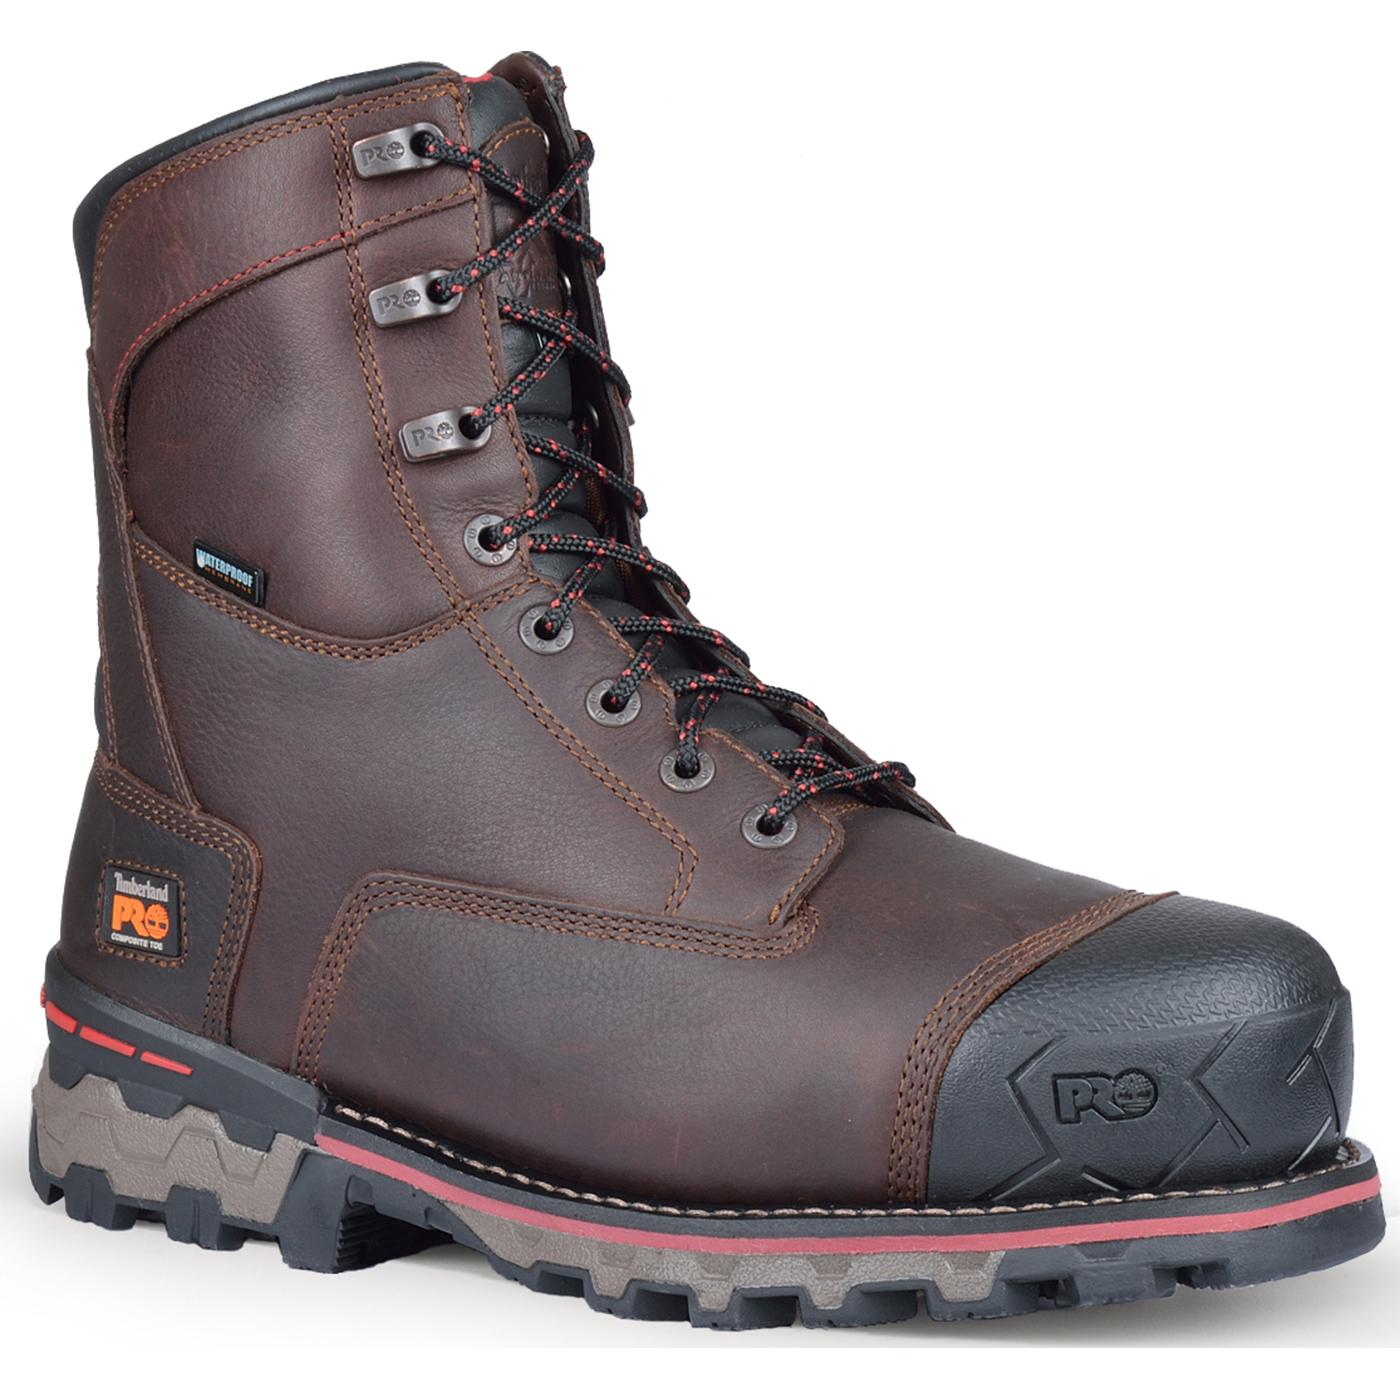 Safety Toe Waterproof Insulated Work Boot: Timberland PRO